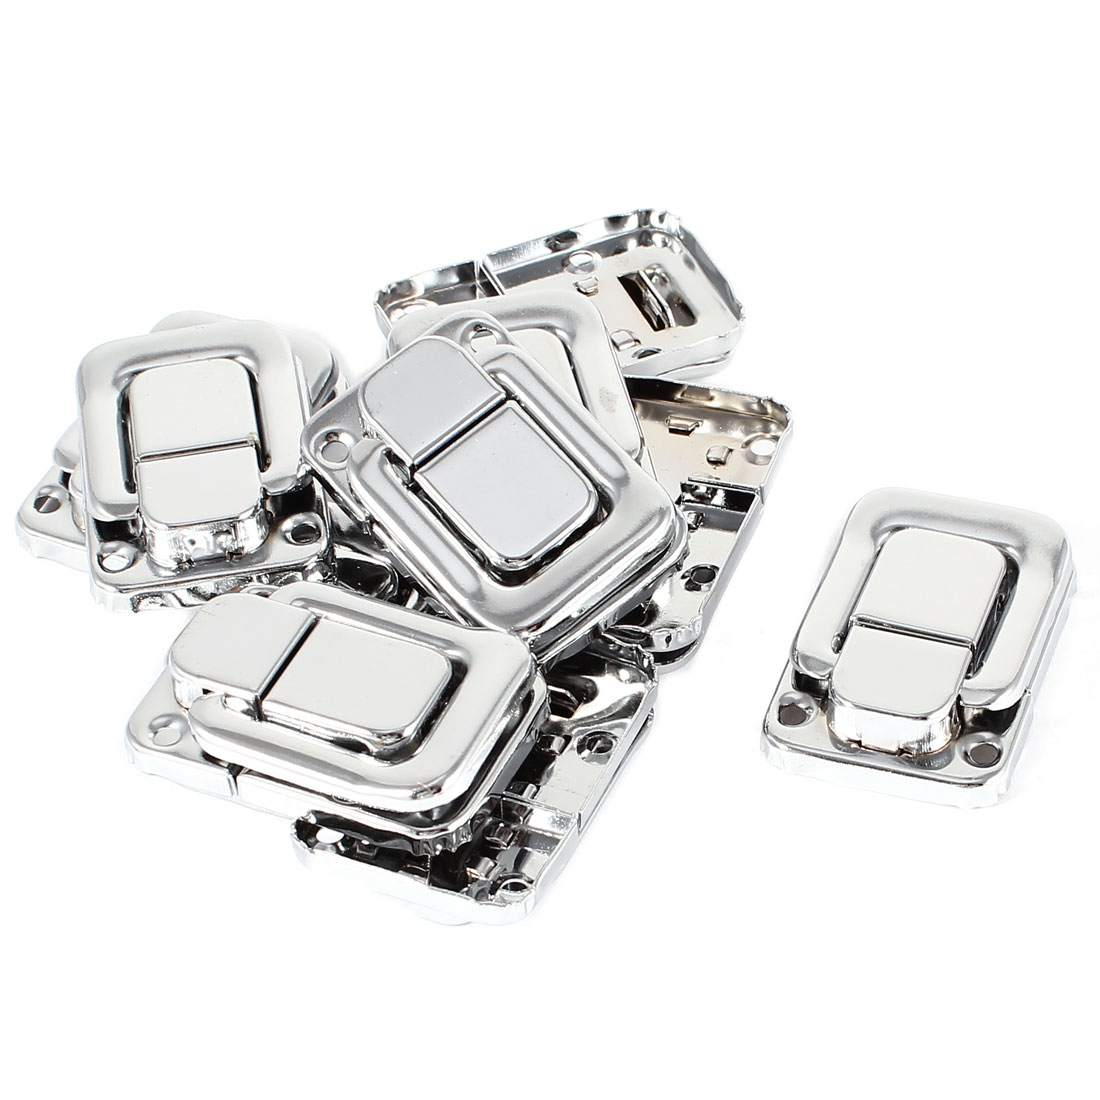 10 Pcs Stainless Steel Spring Loaded Cases Boxes Chest Toggle Catch Latch